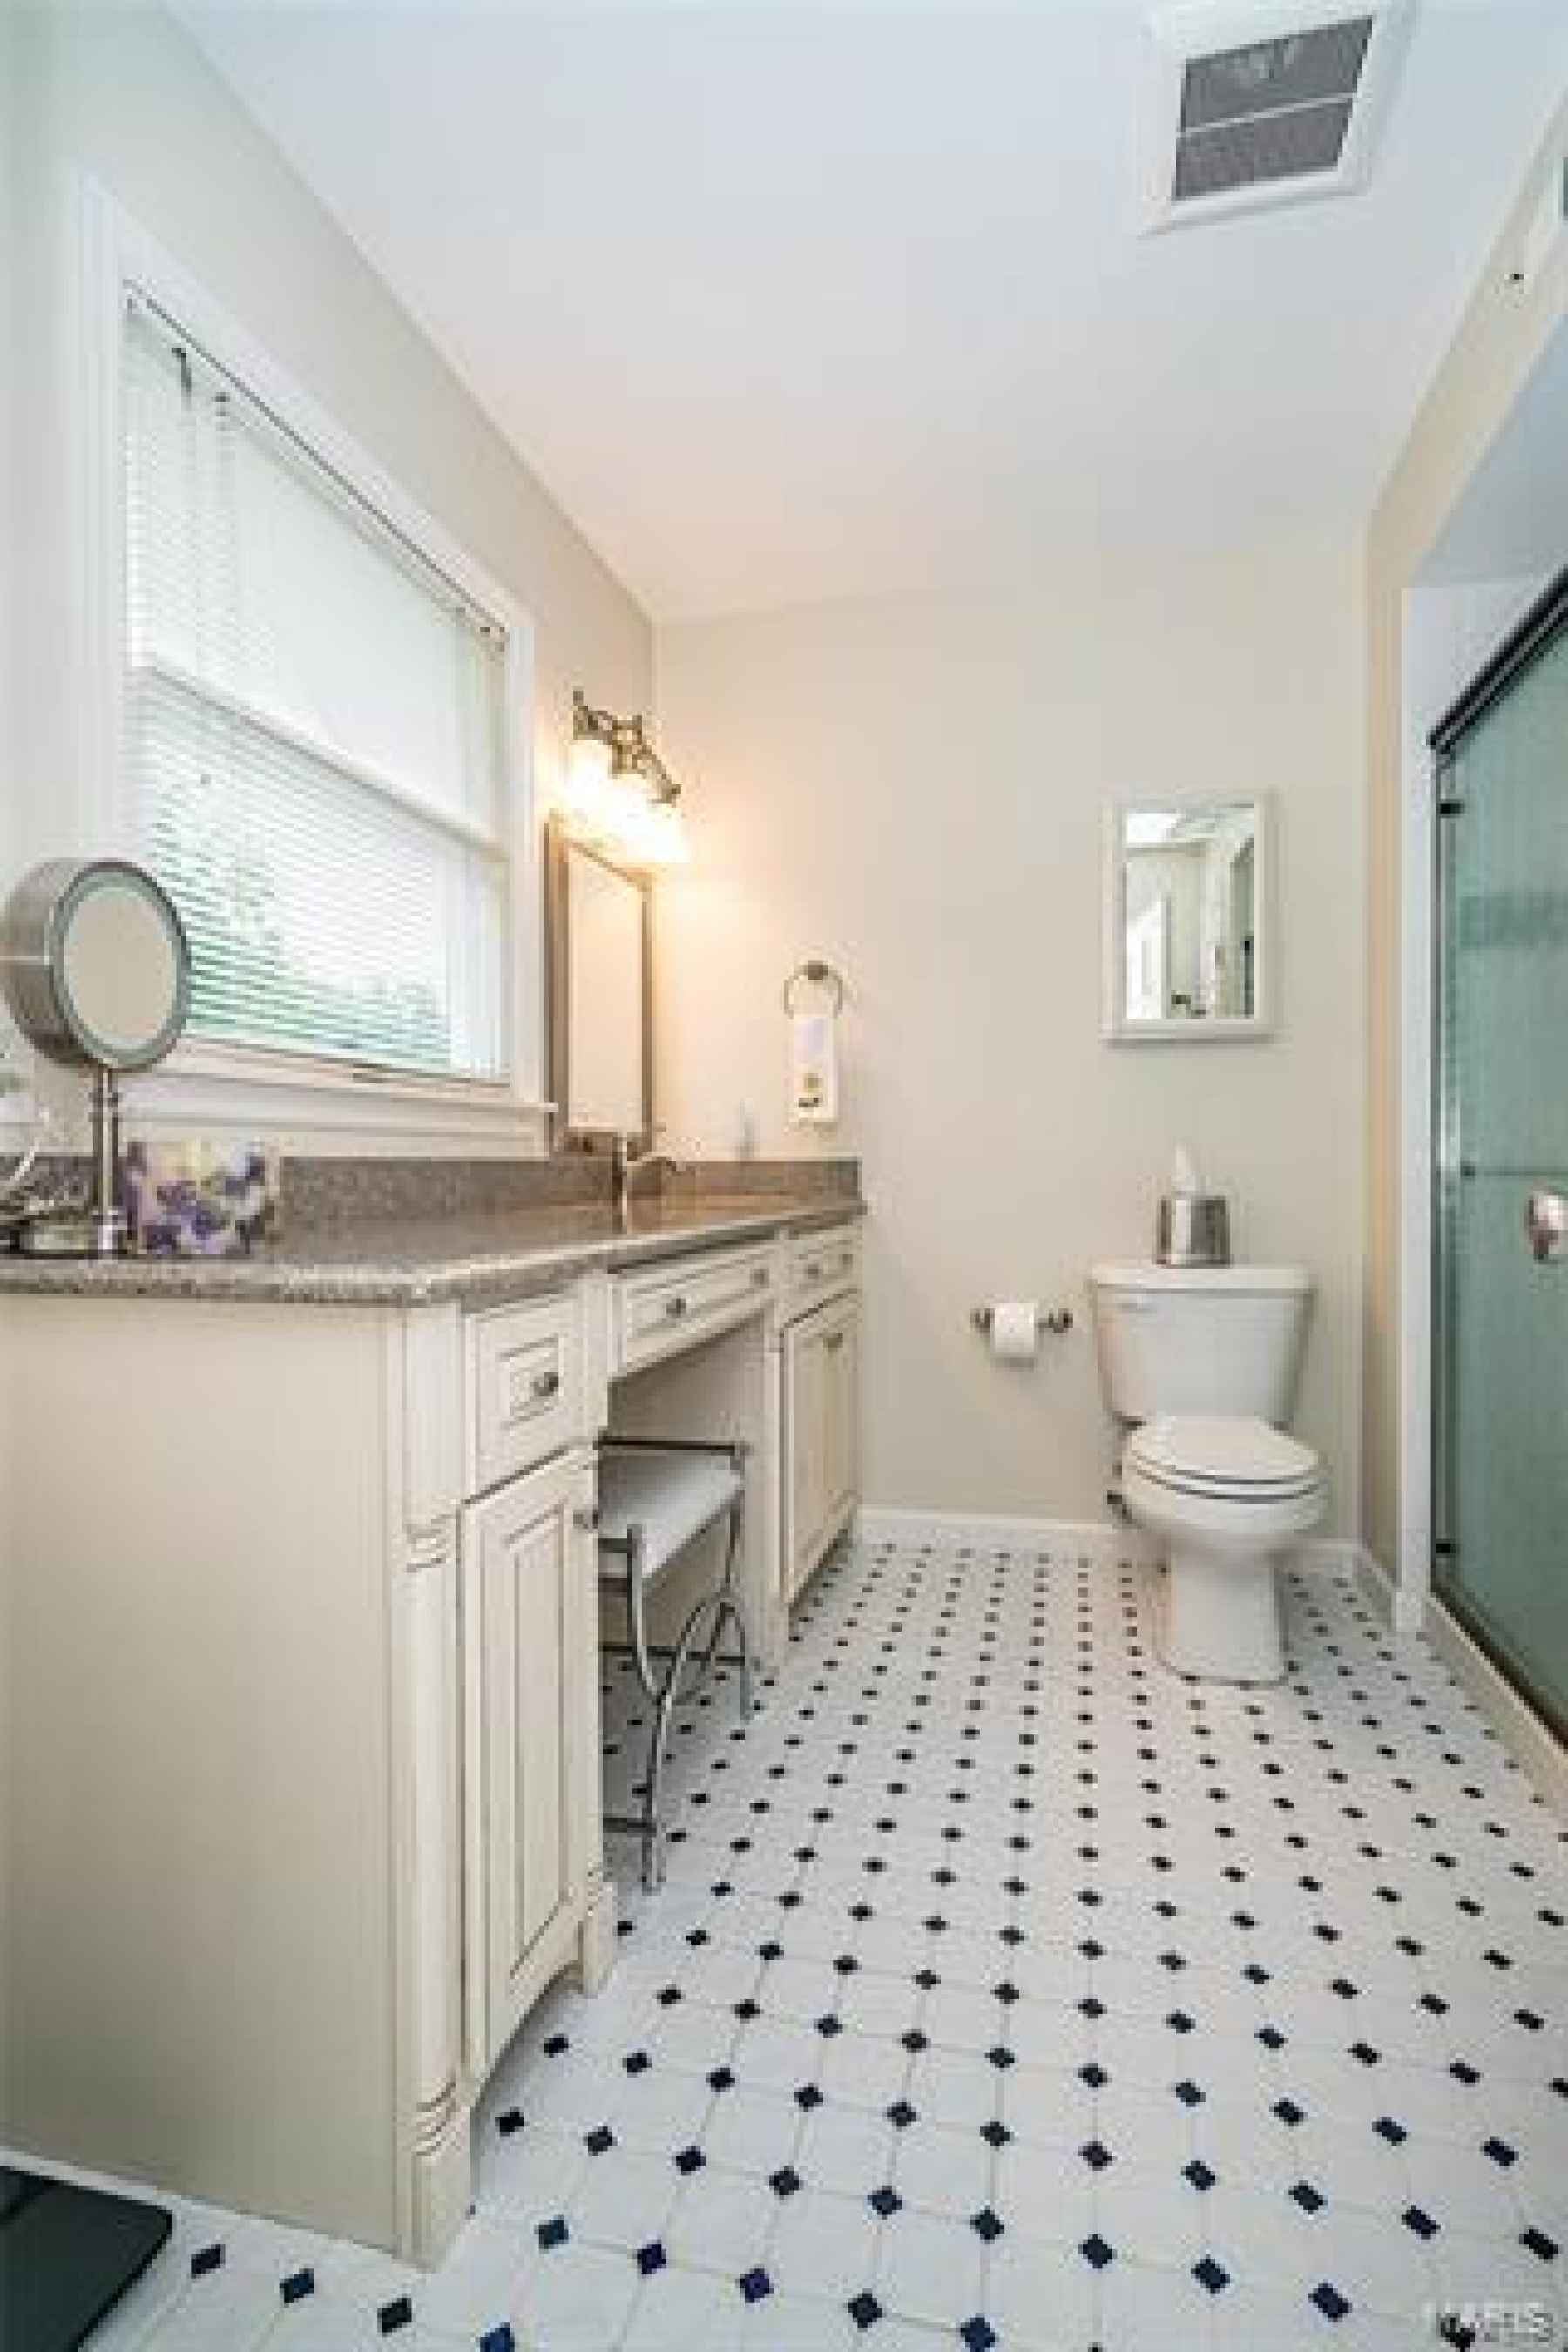 Updated Master Bath with Quartz counter top , multi shower-head, roomy linen closet with pull outs.